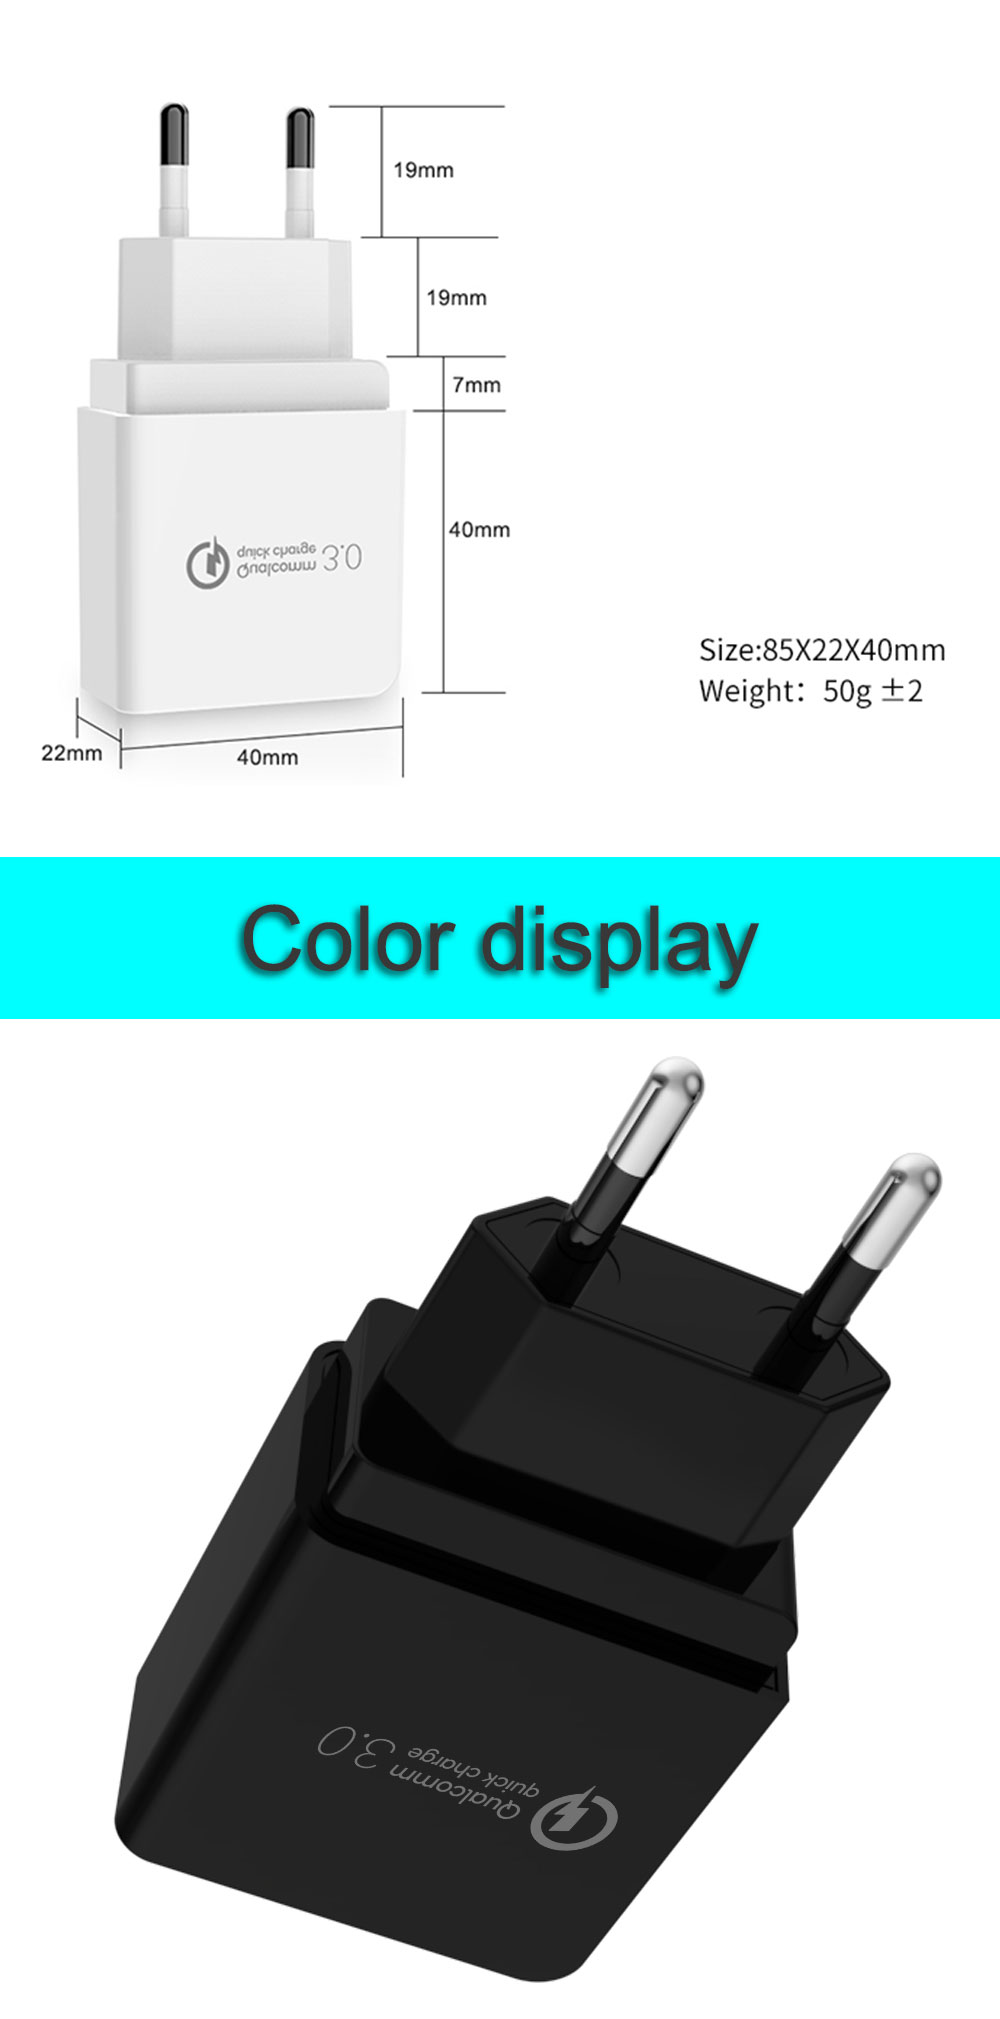 Quick Charge 3.0 18W USB Wall Charger Adapter Smart IC for Samsung S10 S9 Note 9 8 Xiaomi LG HTC Mobile Phone QC3.0 Fast Charger (6)